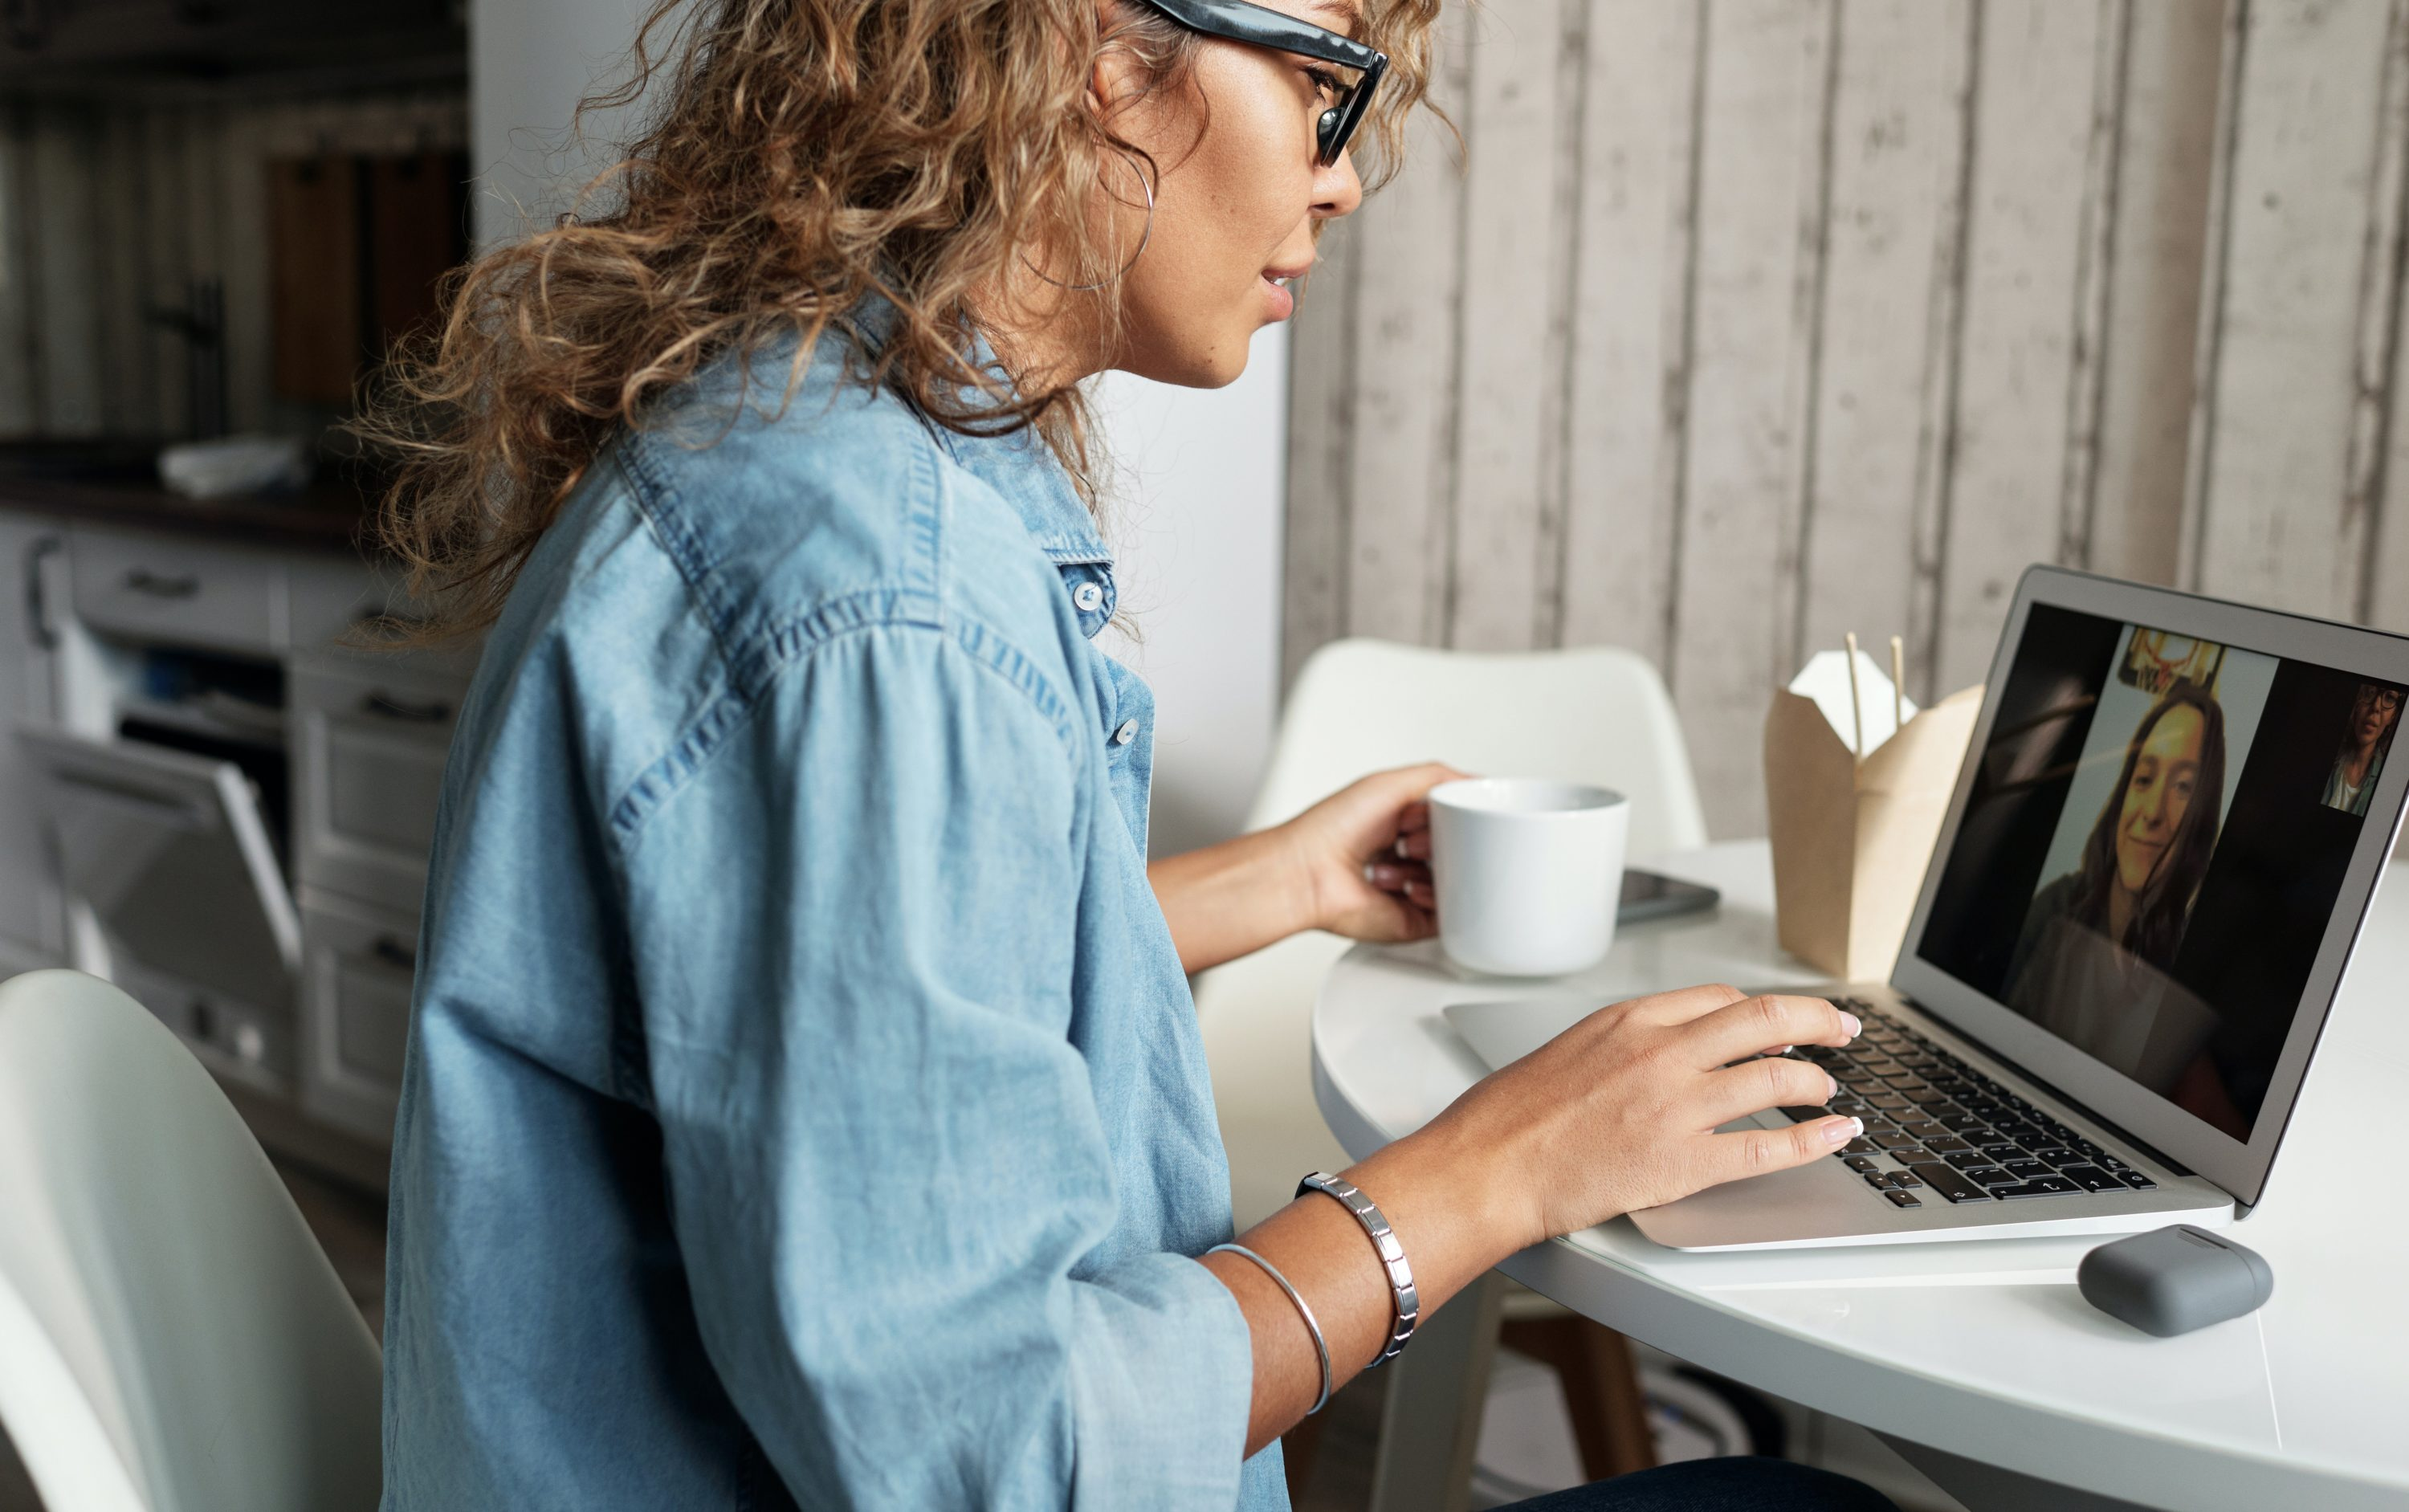 Woman with curly hair and black framed glasses sat a laptop on a call with someone